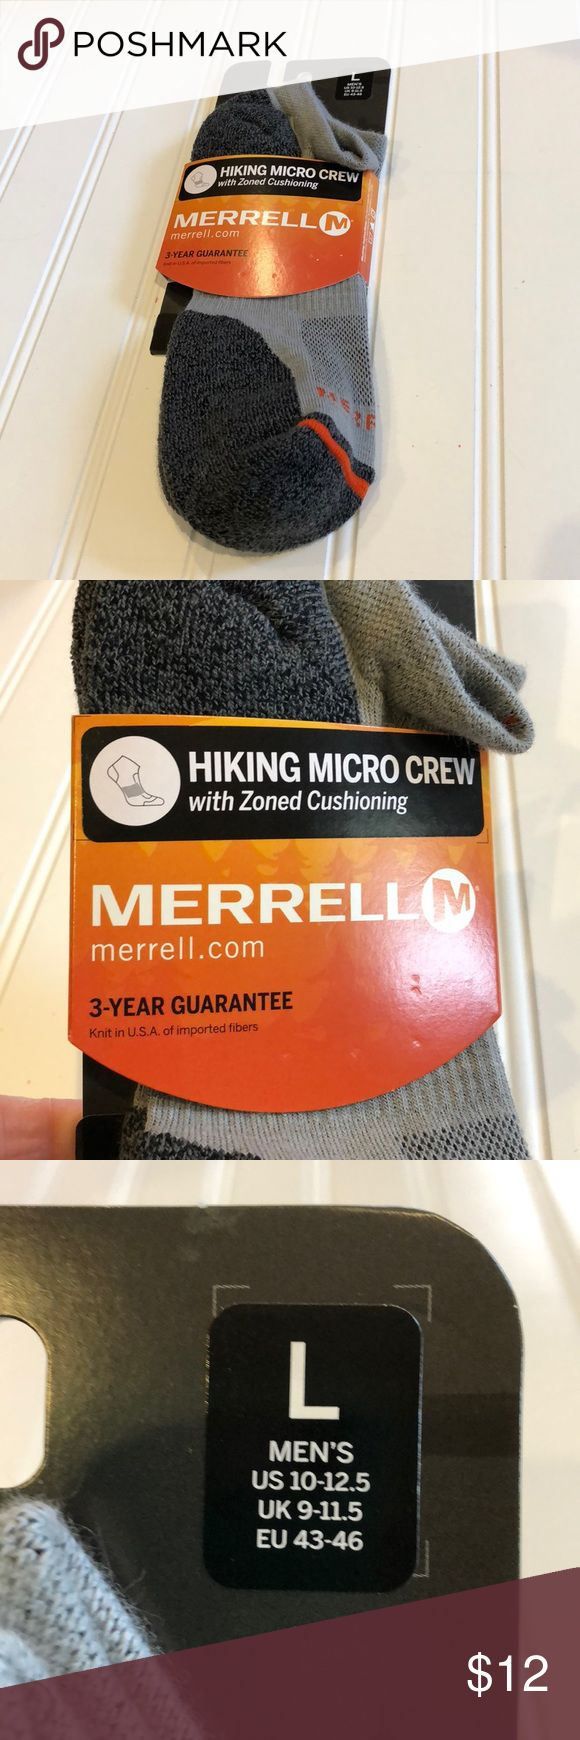 Merrell hiking micro crew socks, men's Sz 10-12.5 Zoned cushioning in heel and forefoot Reinforced in heel/toe for added durability Mesh zone on top of foot for breathability Arch band support to fight fatigue Seamless toe closure for comfort Merrell Underwear & Socks Athletic Socks